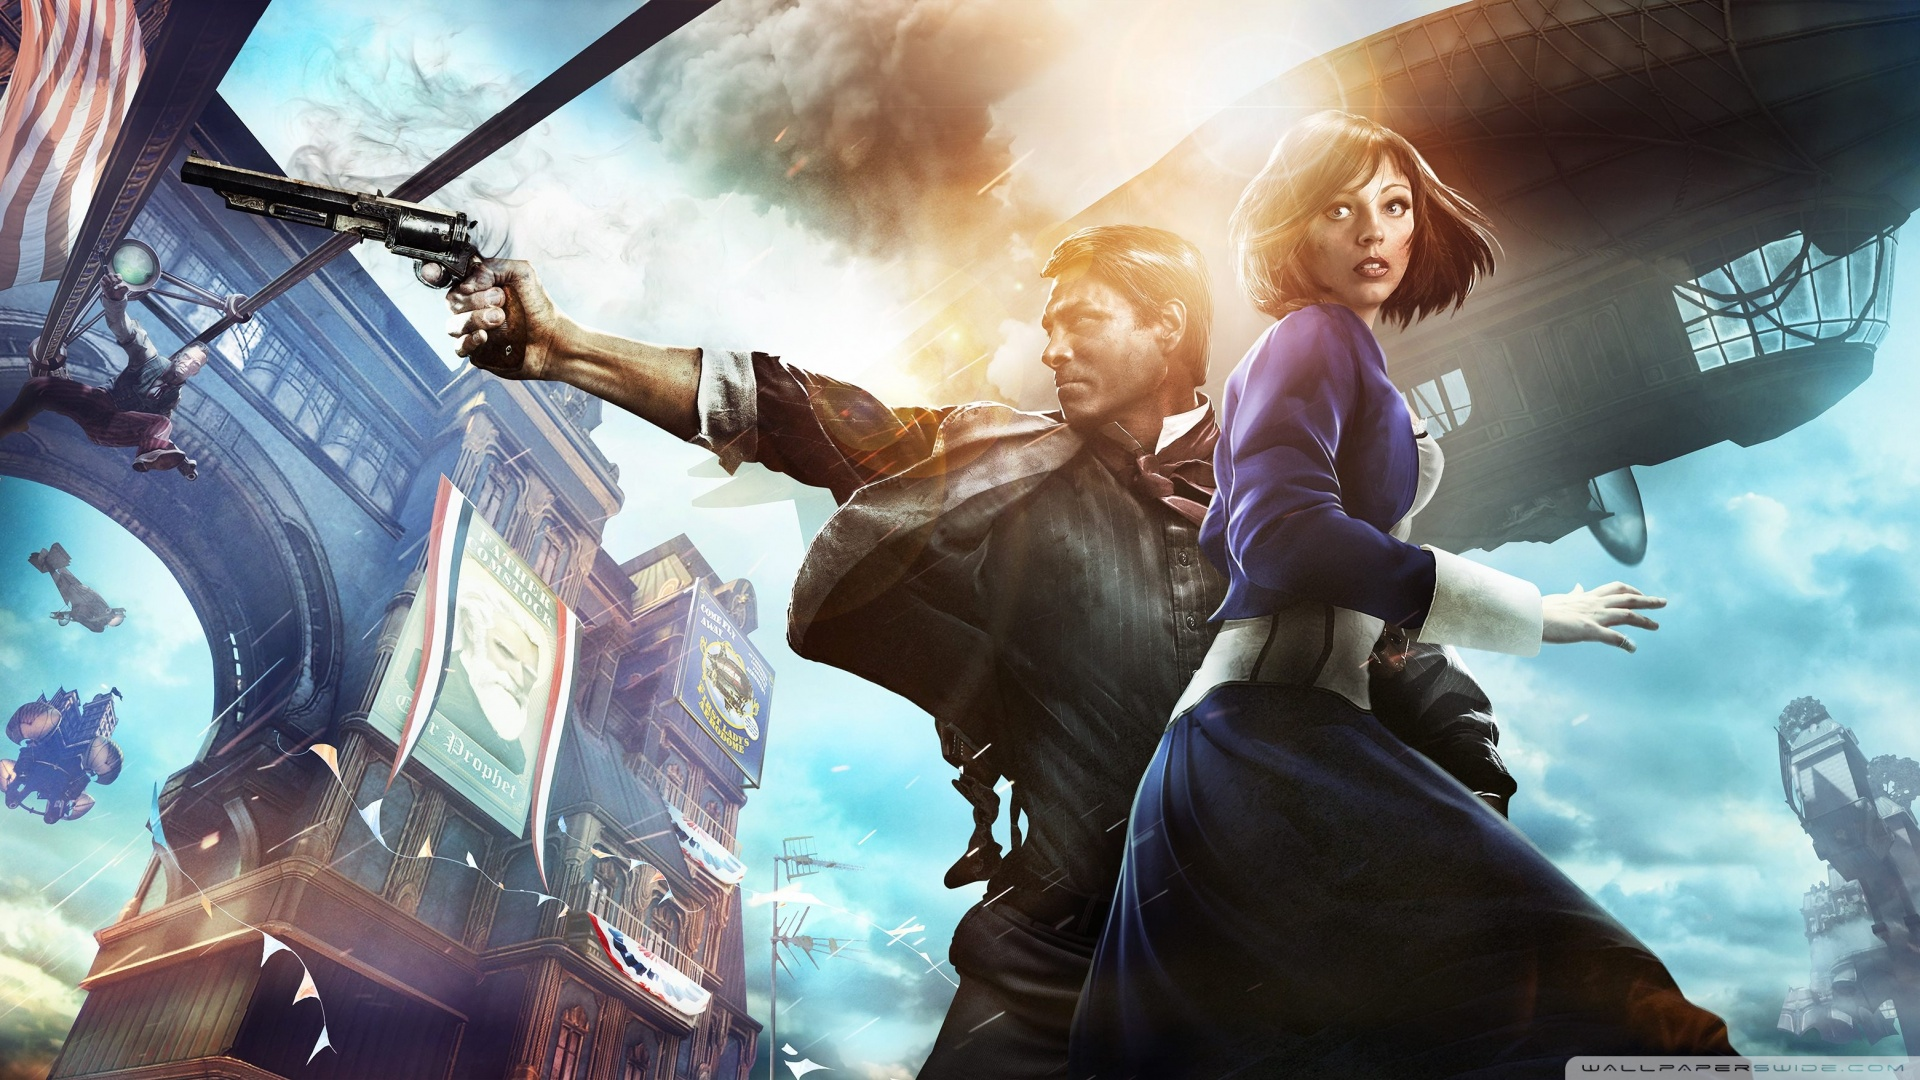 Bioshock Infinite 4K HD Desktop Wallpaper for 4K Ultra HD TV 1920x1080